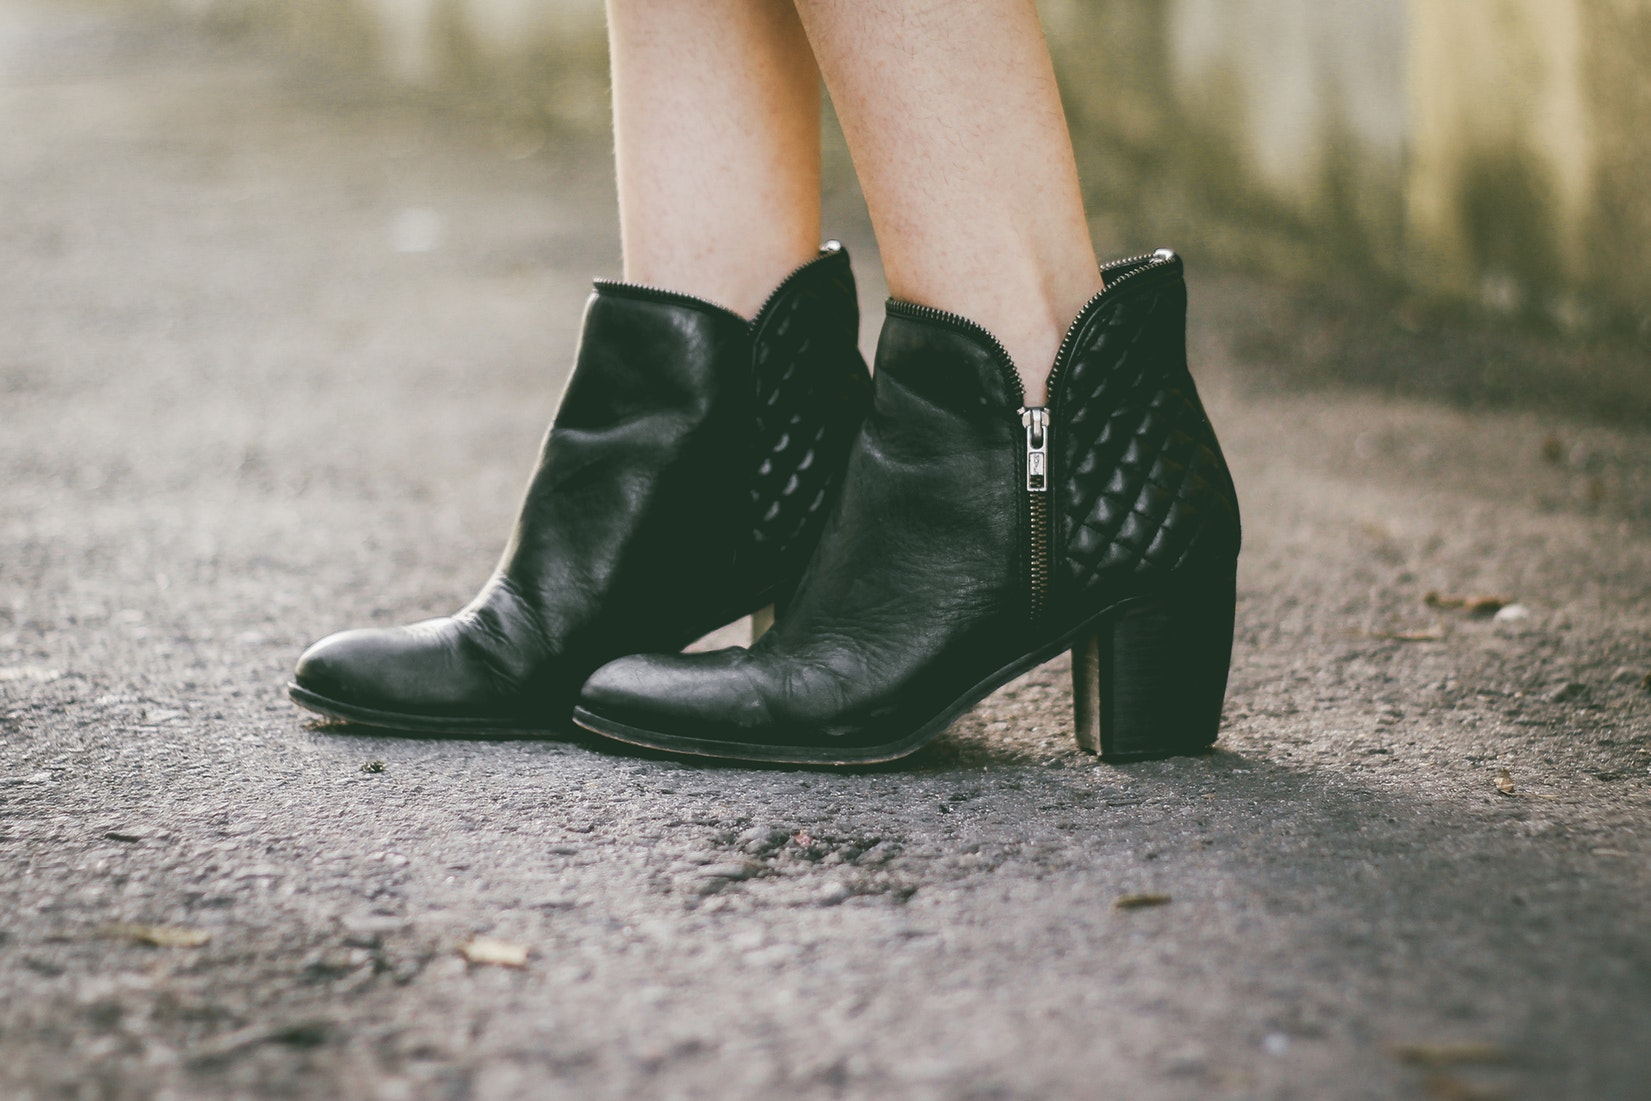 5 Boots To Try Going Into Autumn and Winter